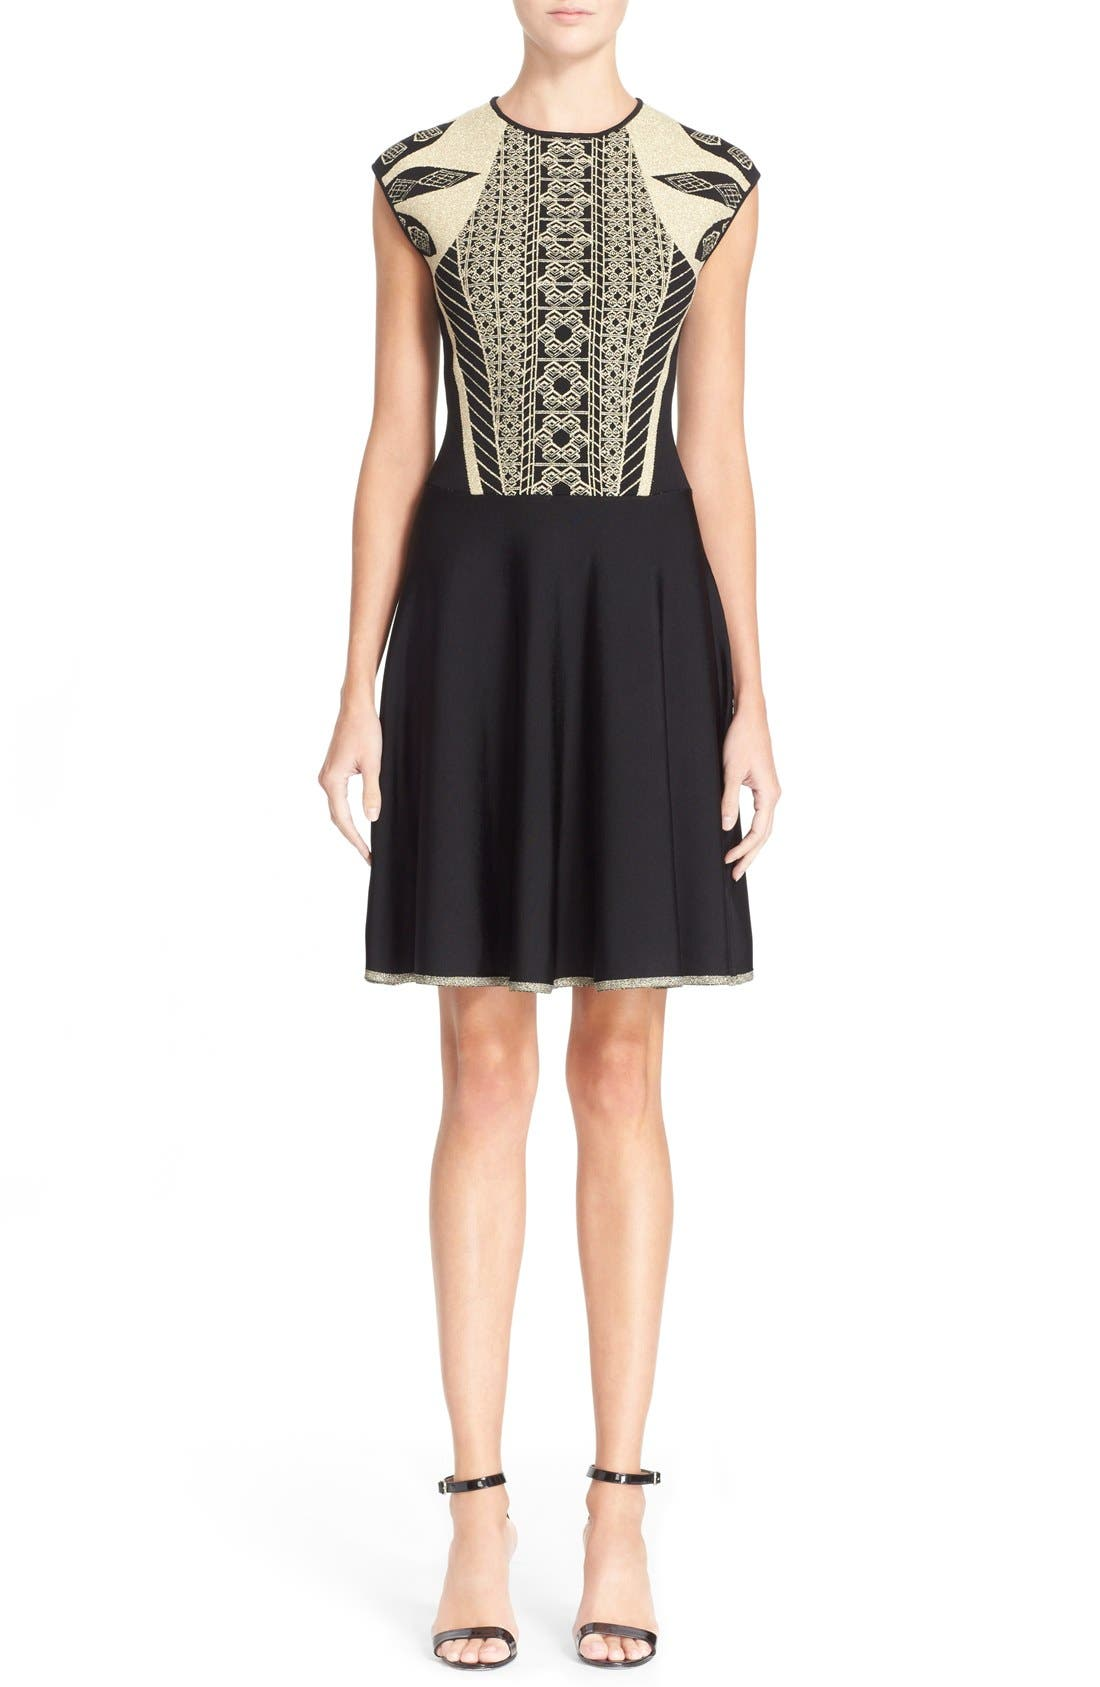 Main Image - Ted Baker London 'Jenkin' Metallic Jacquard Fit & Flare Dress